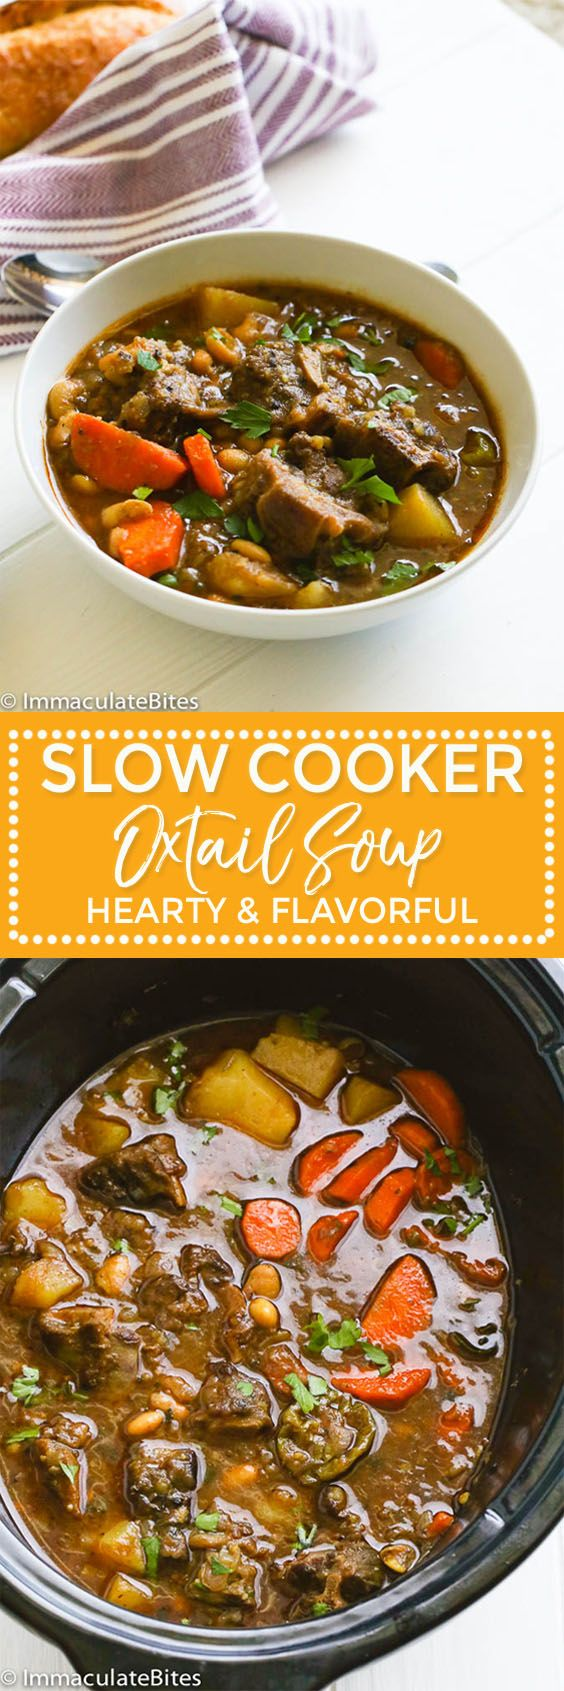 Slow Cooker Oxtail Soup -  a hearty stew with rich broth and succulent tender meat that's comforting and perfect for cold and even hot season.